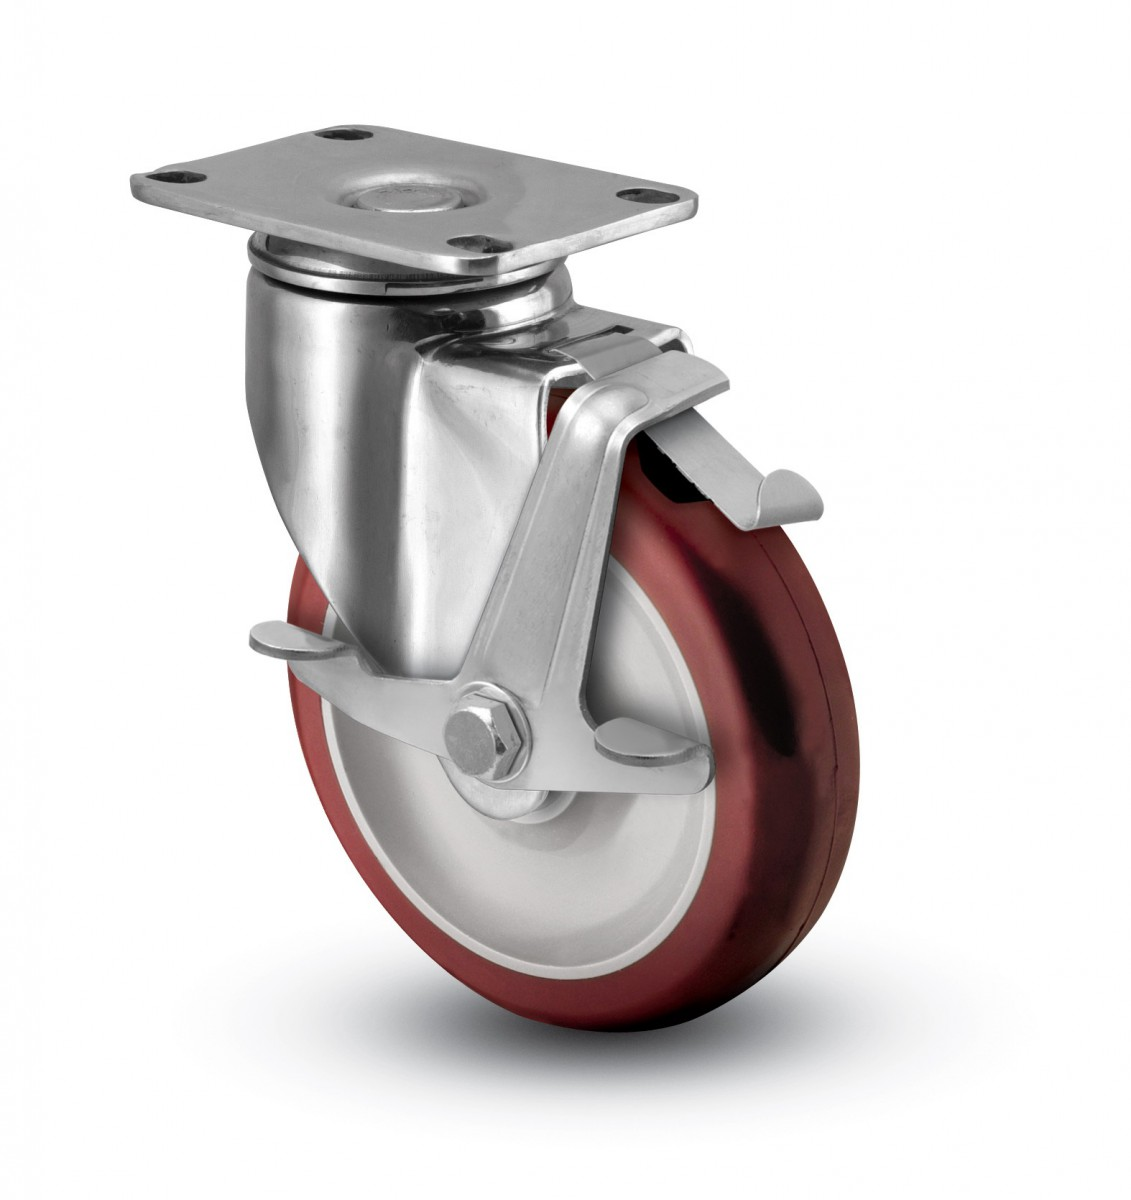 Casters And Wheels Stainless Steel Casters And Wheels